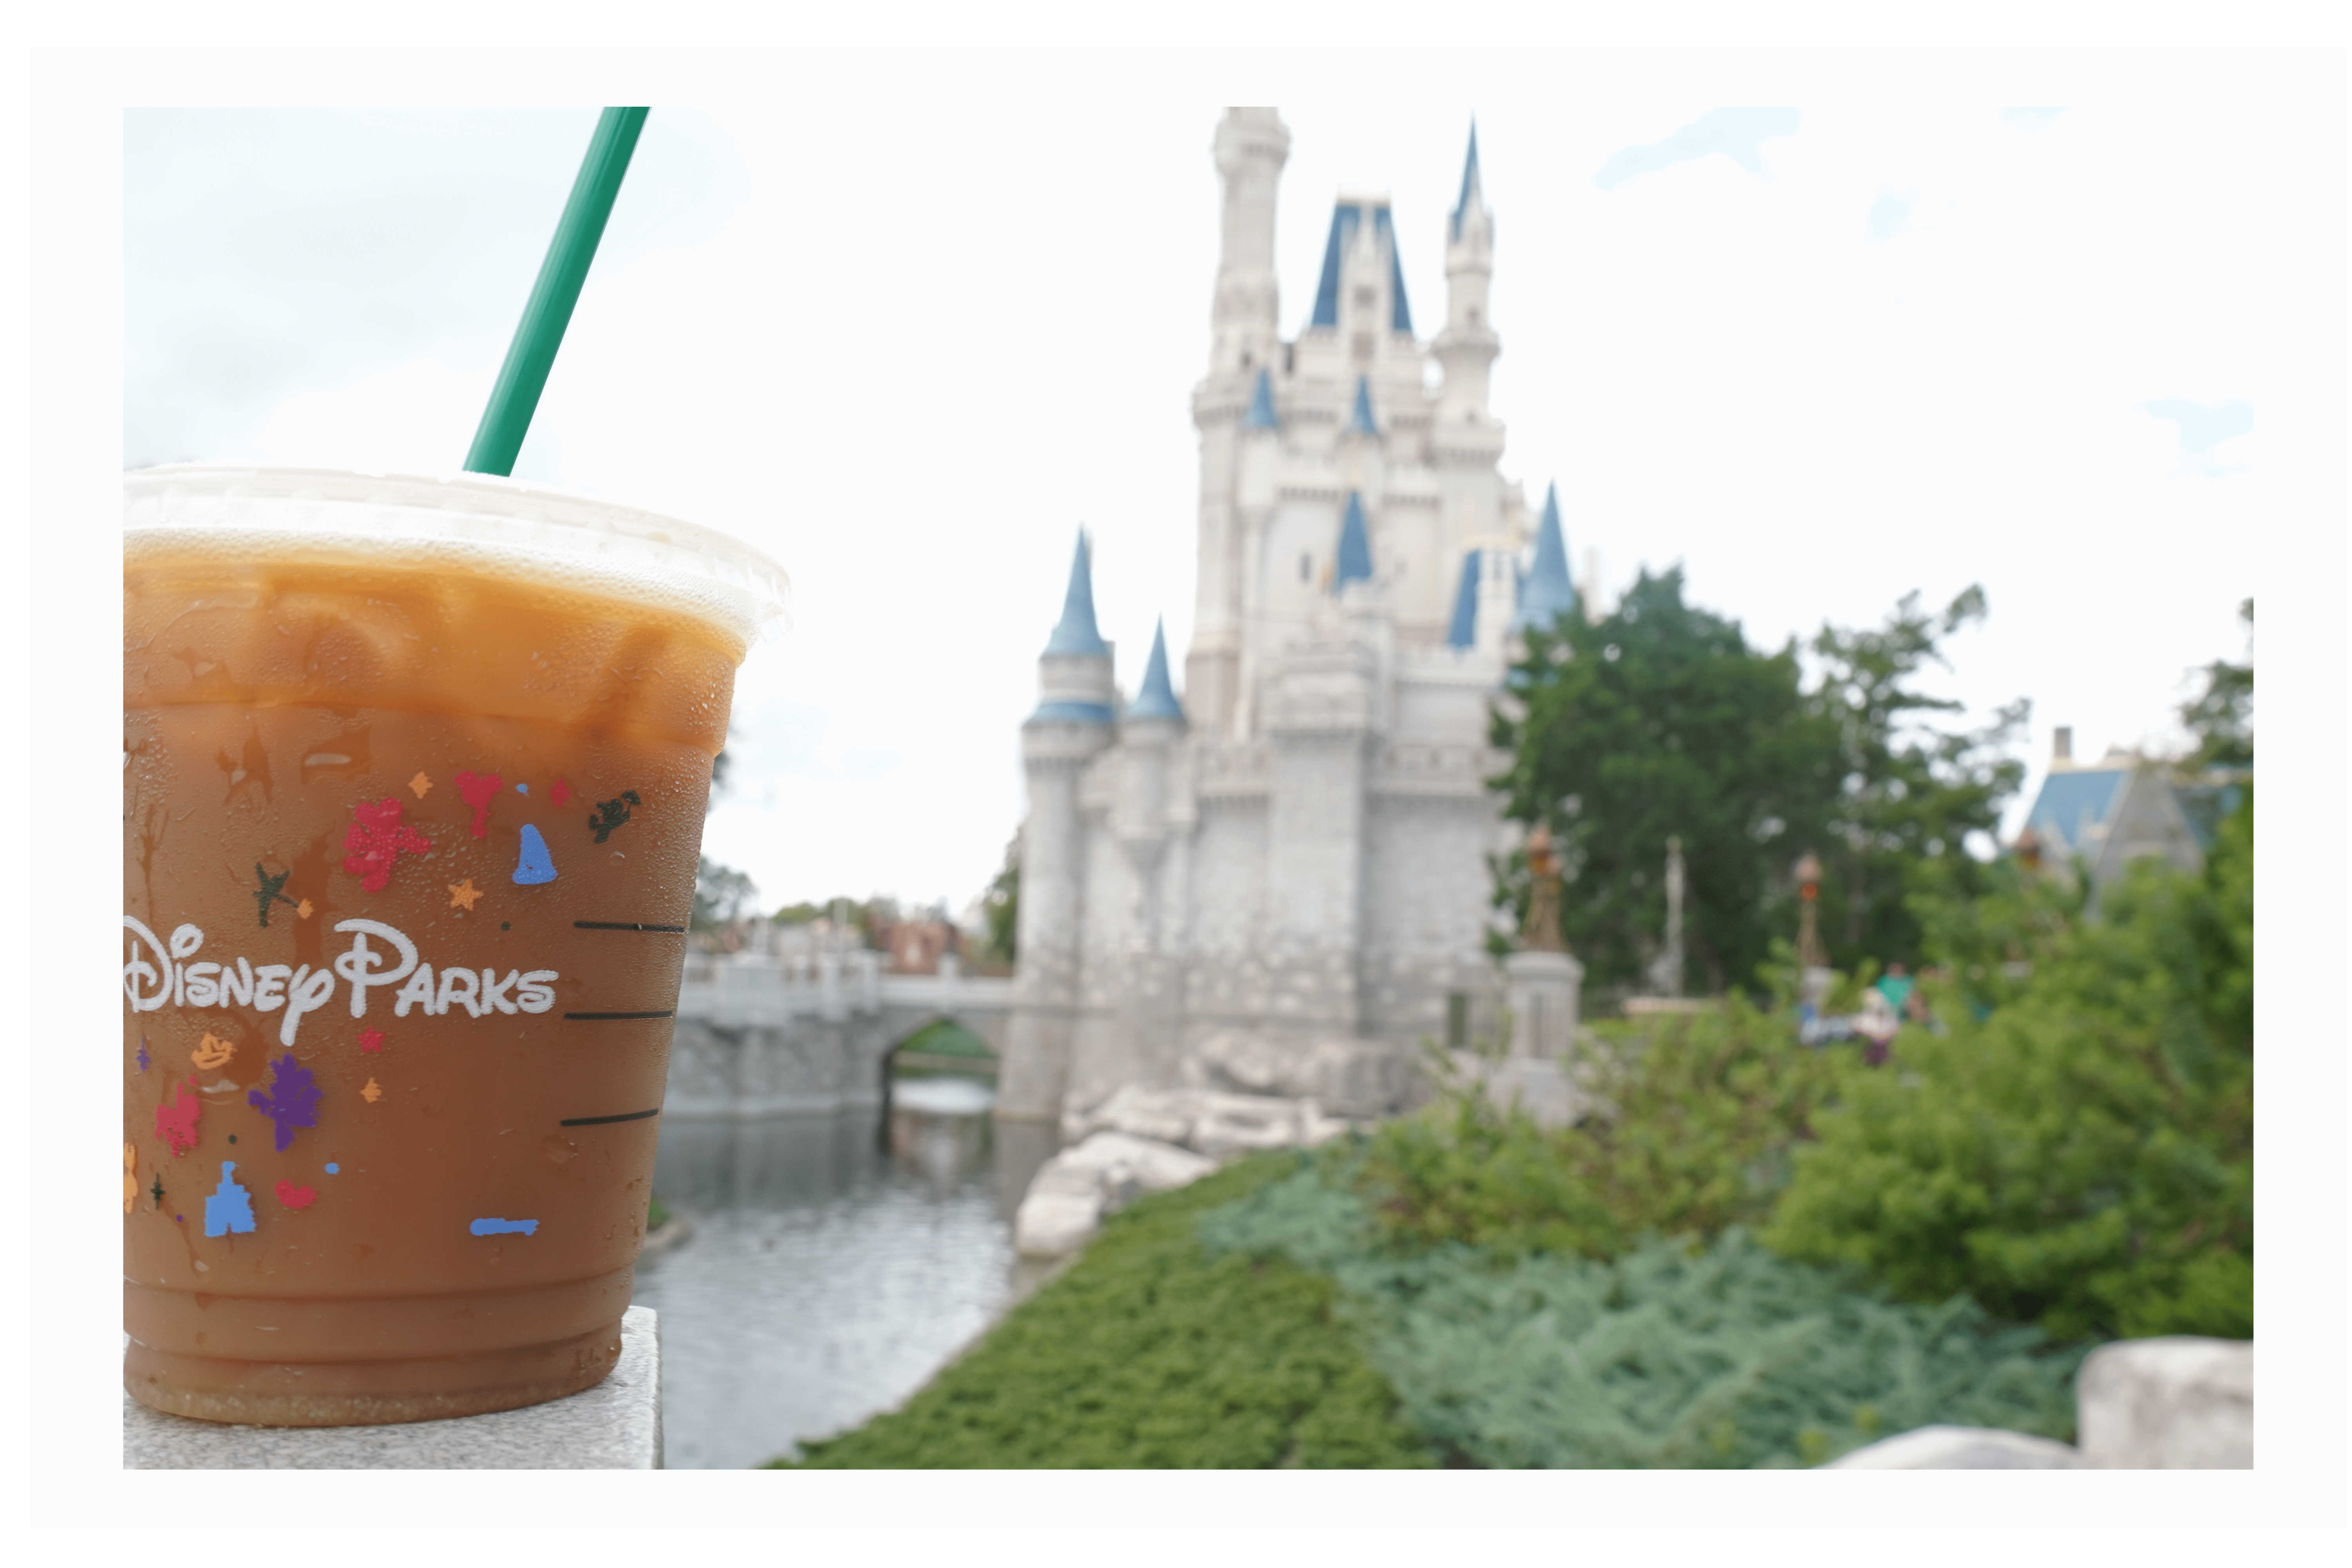 Starbucks iced coffee in front of cinderella castle in Disney World